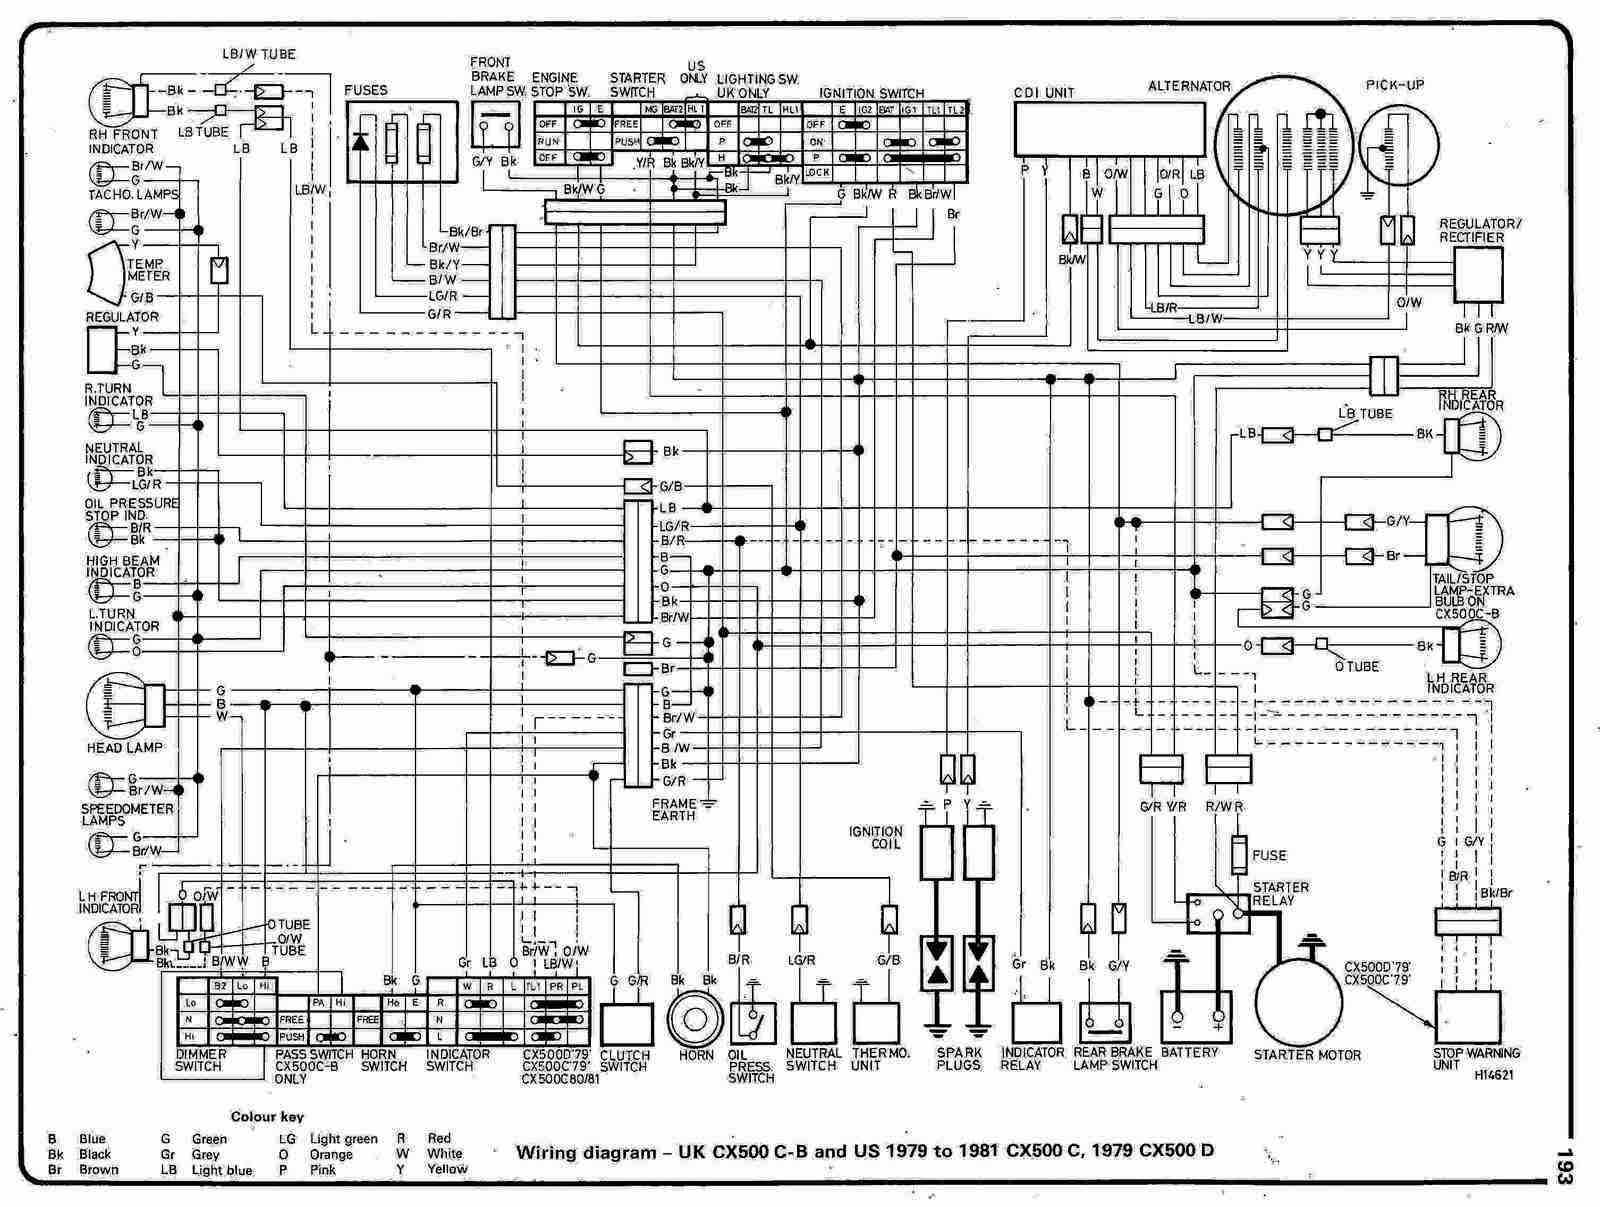 Motorcycle Wiring Diagram Pdf | Wiring Library